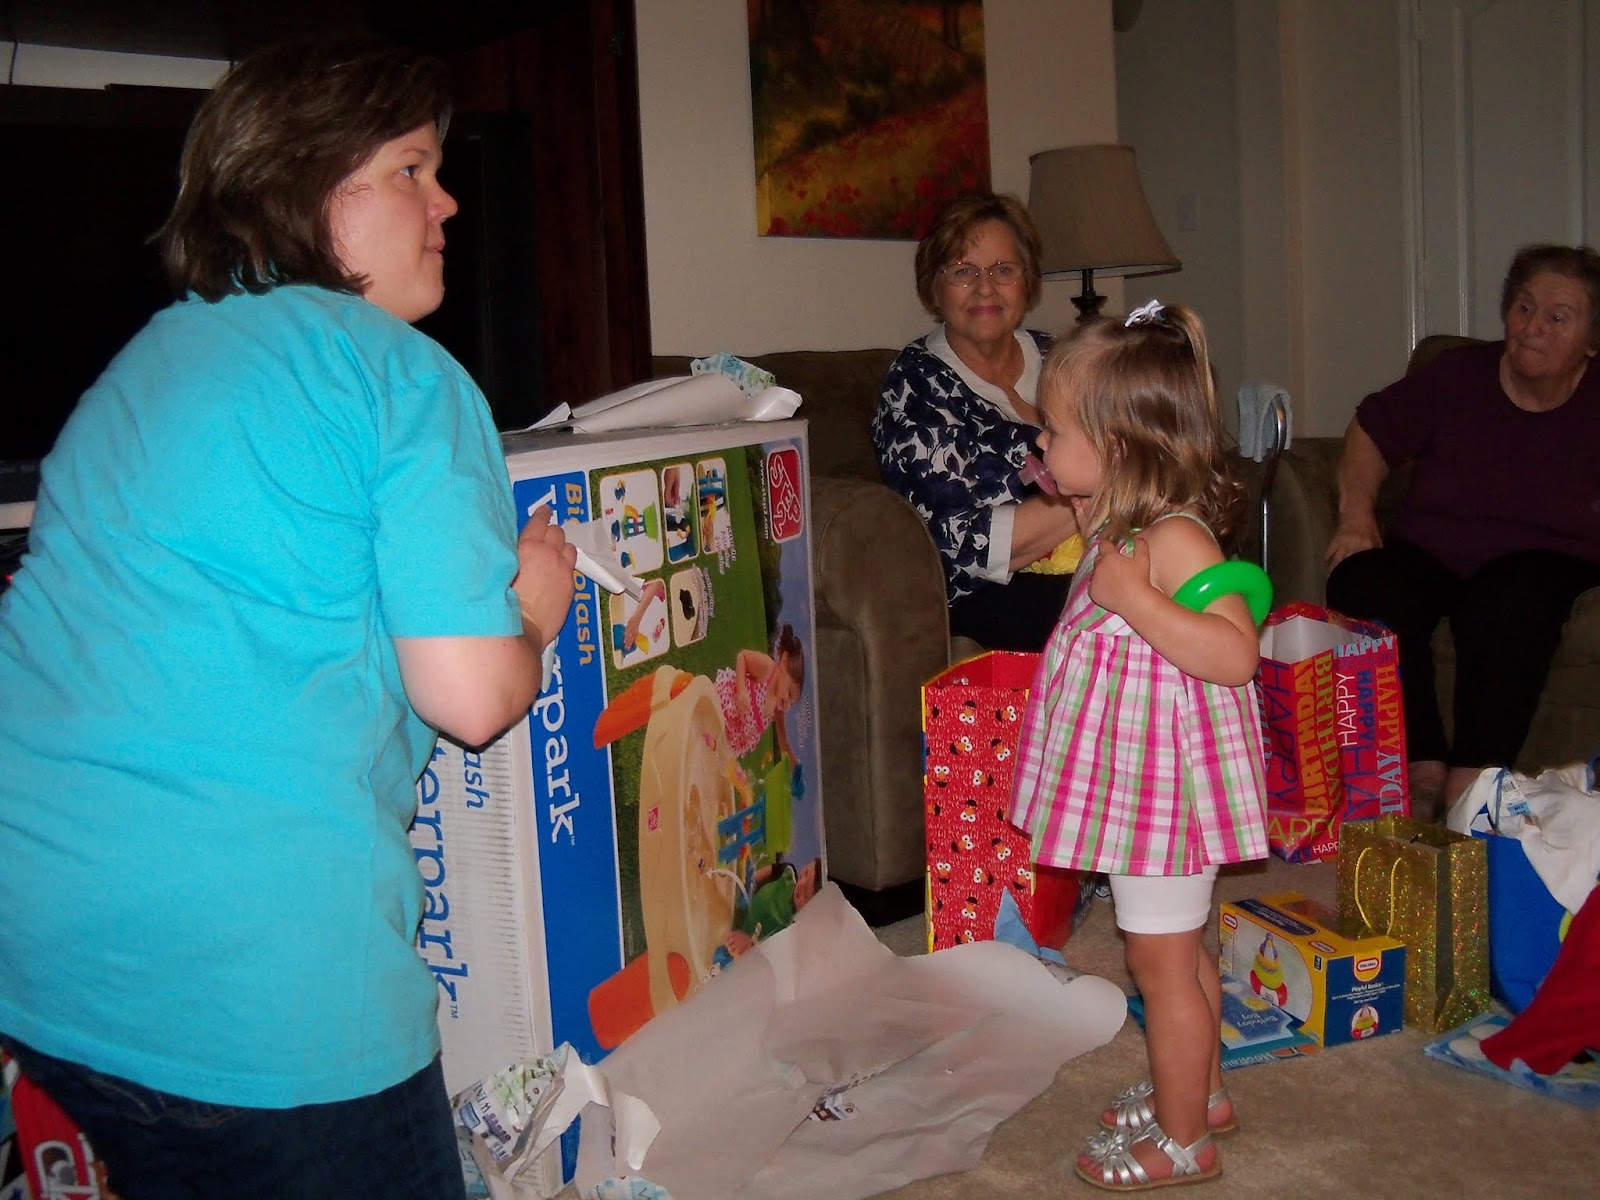 Marshalls First Birthday Party - 115_6714.JPG